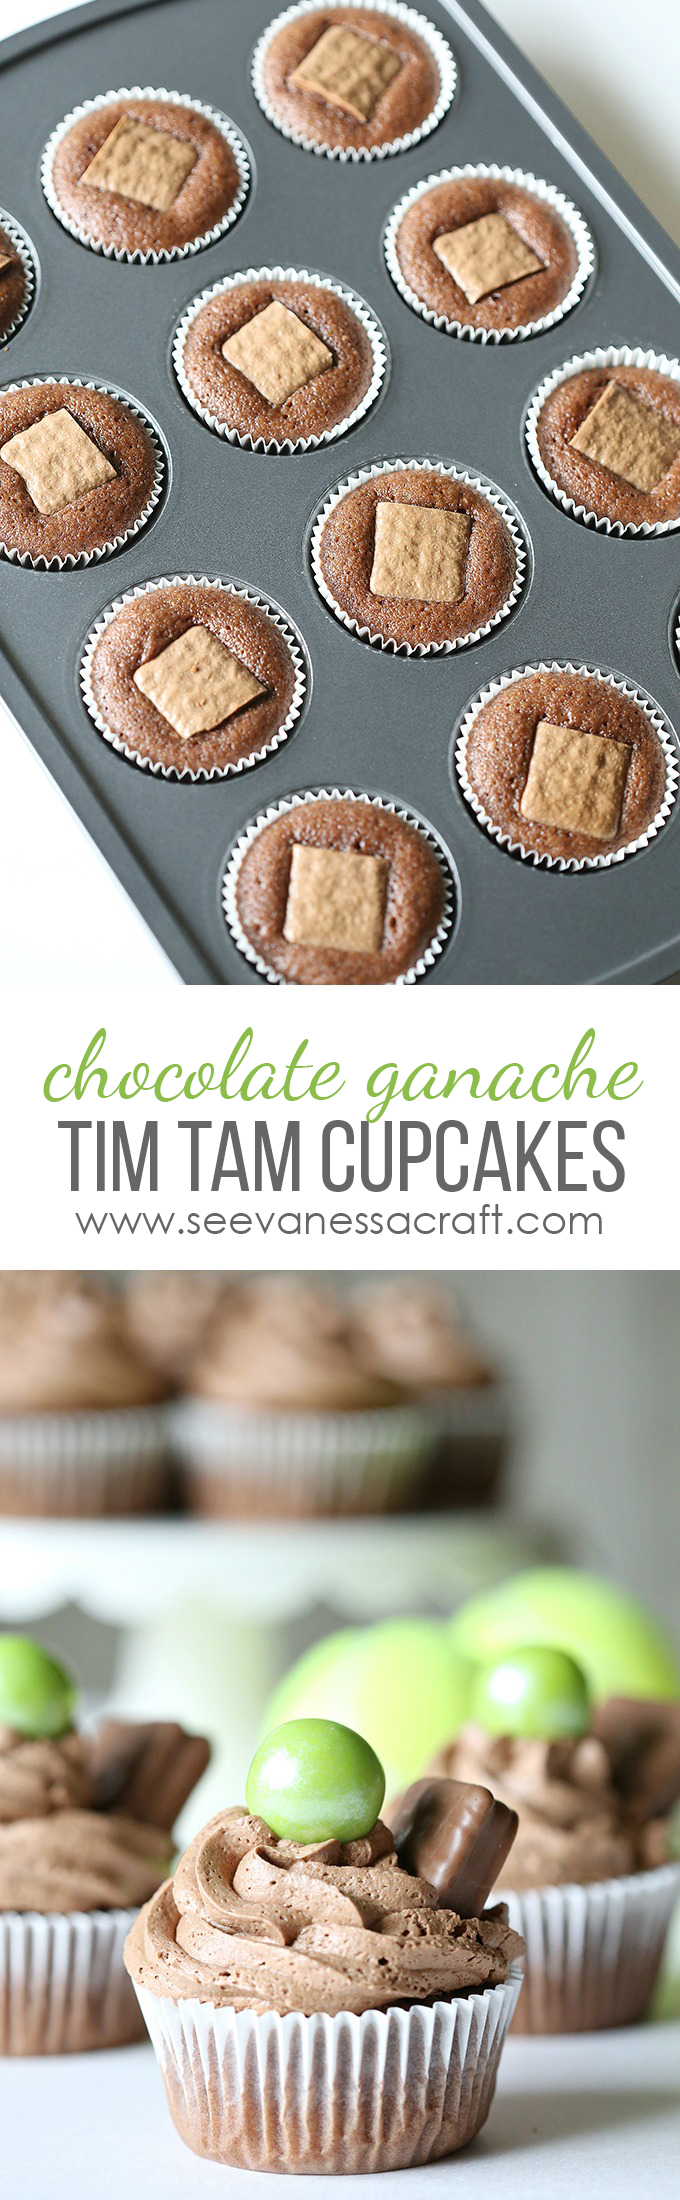 chocolate-ganache-tim-tam-cupcake-recipe